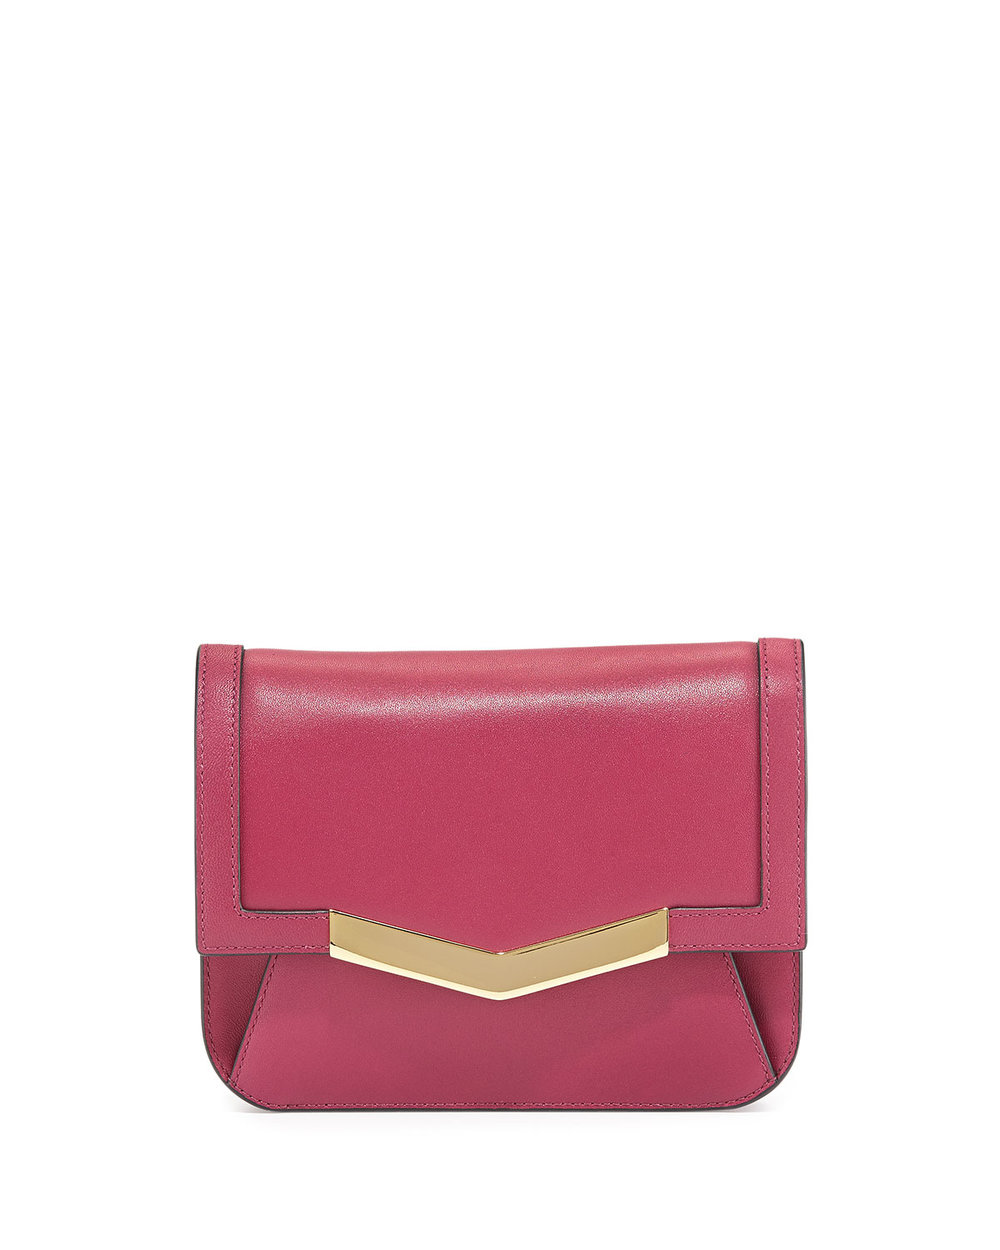 Time's ArrowCalfskin Chevron-Detail Belt Bag, Dahlia. Last Call Neiman Marcus. Was: $275. Now: $115 because the Friends and Family event is happening! 40% off for card holders w/ code: FRIEND40 or 30% off  for everyone until March 8th!